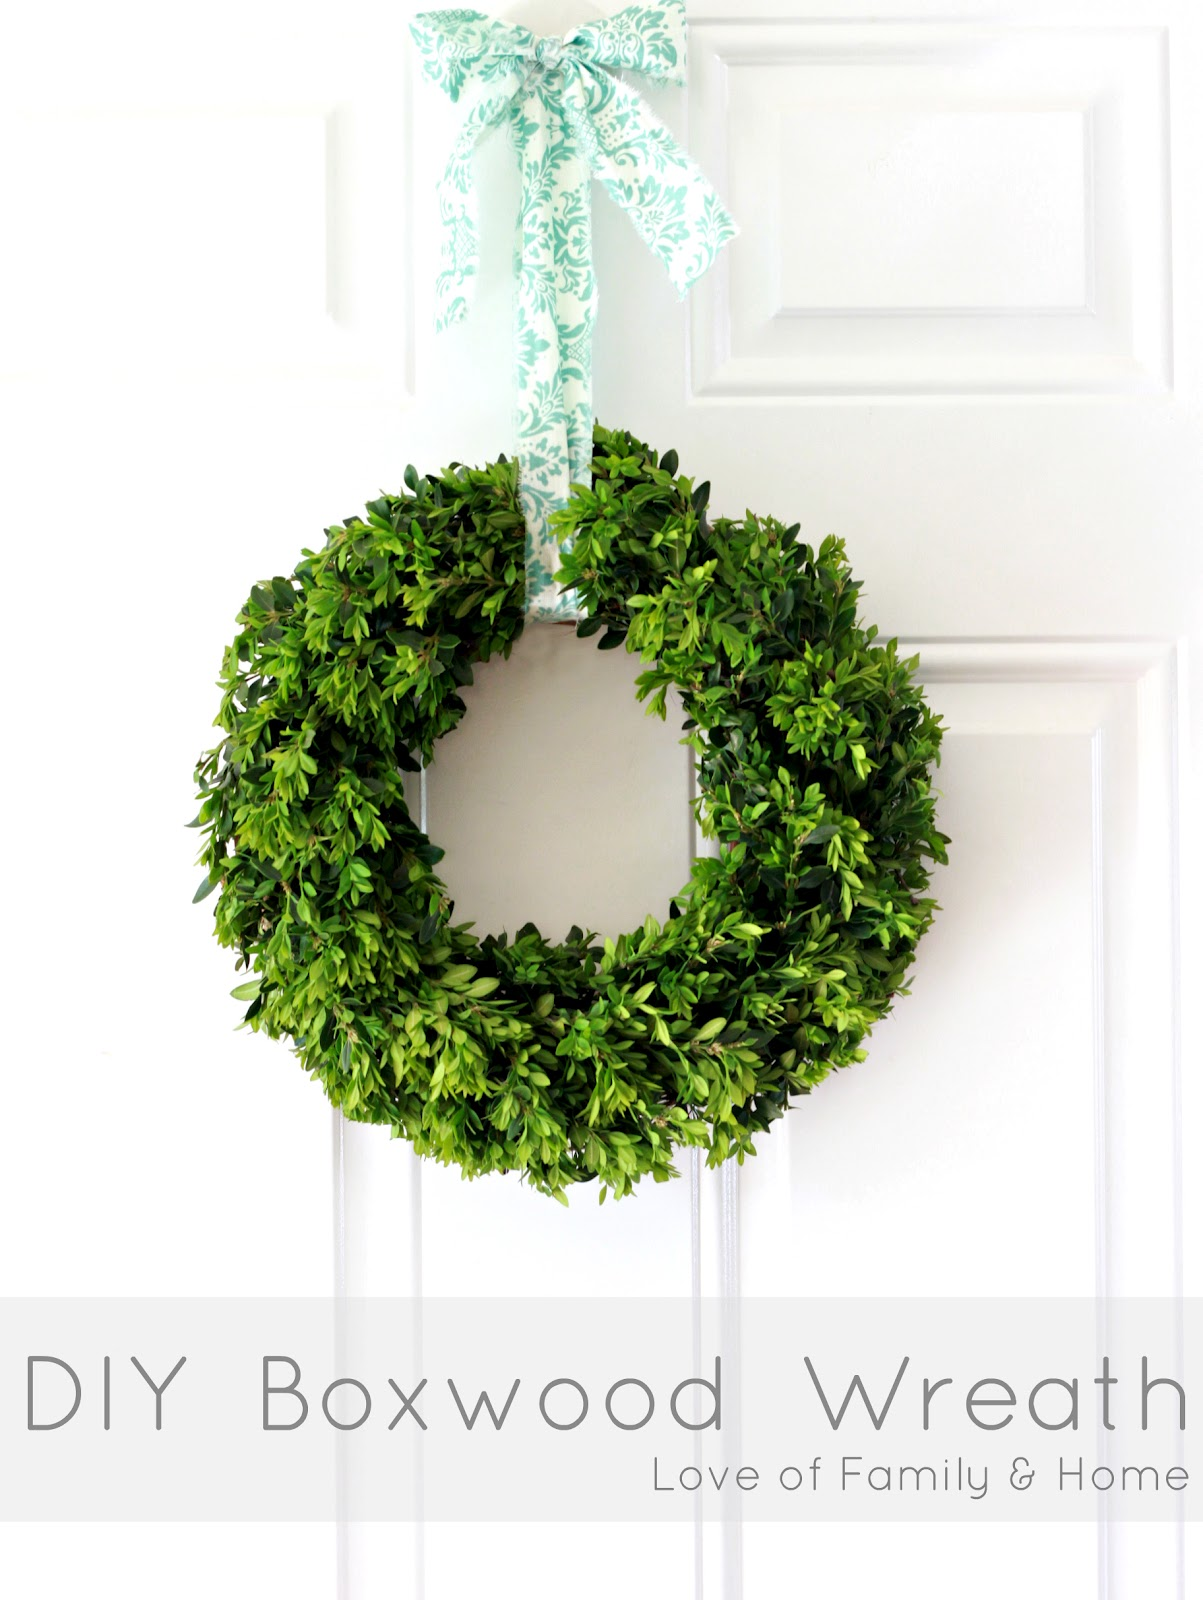 round design artificial boxwood wreath for love of family